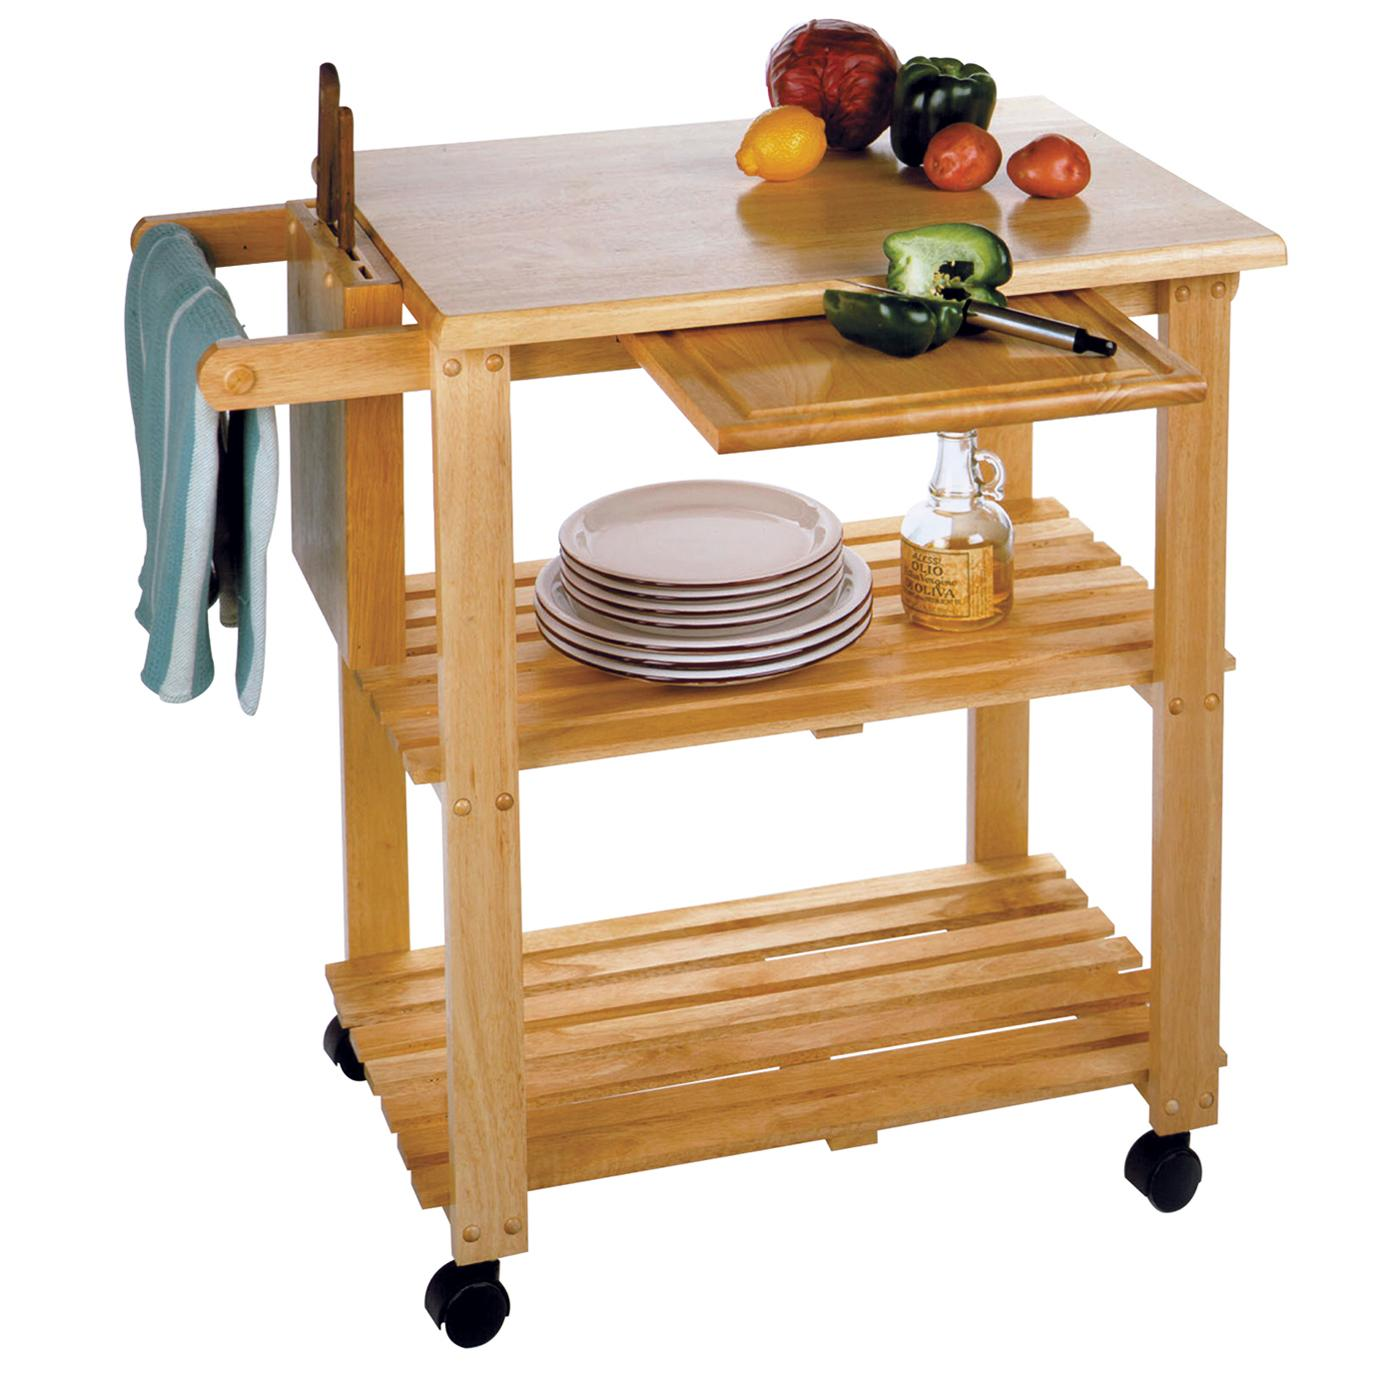 Amazing Kitchen Cart With Cutting Board, Knife Block And Shelves   [89933]